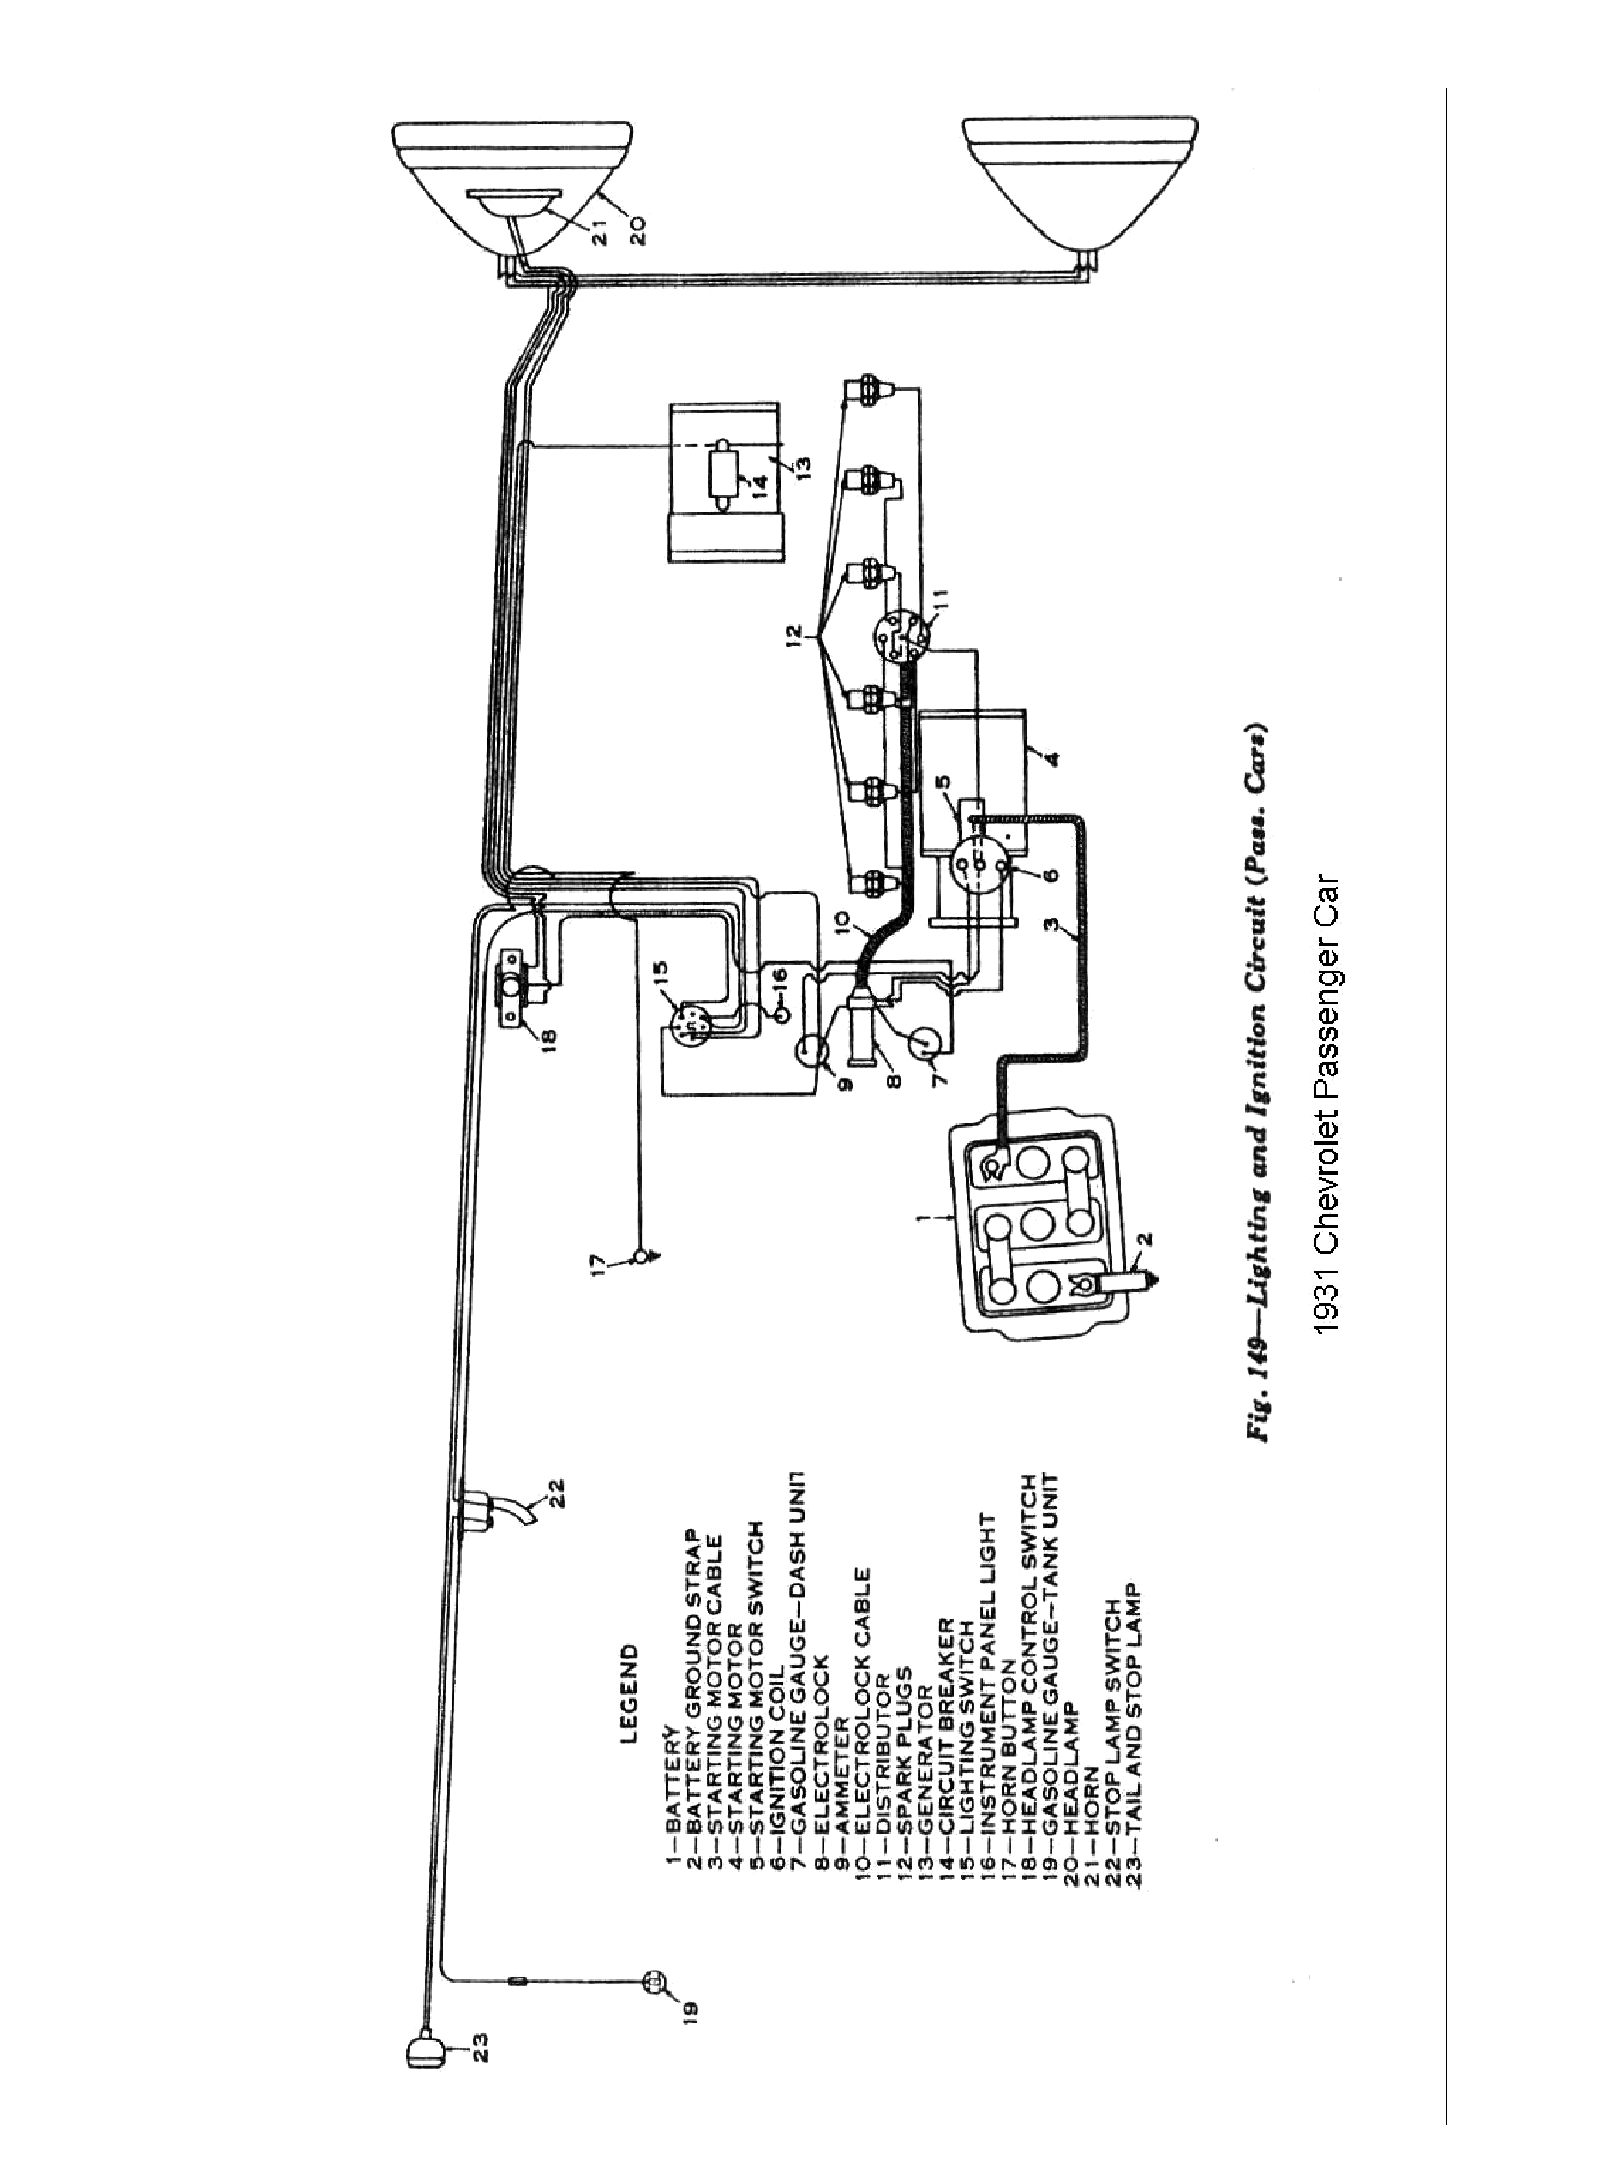 57 chevy fuse block diagram wiring schematic wiring diagram \u2022